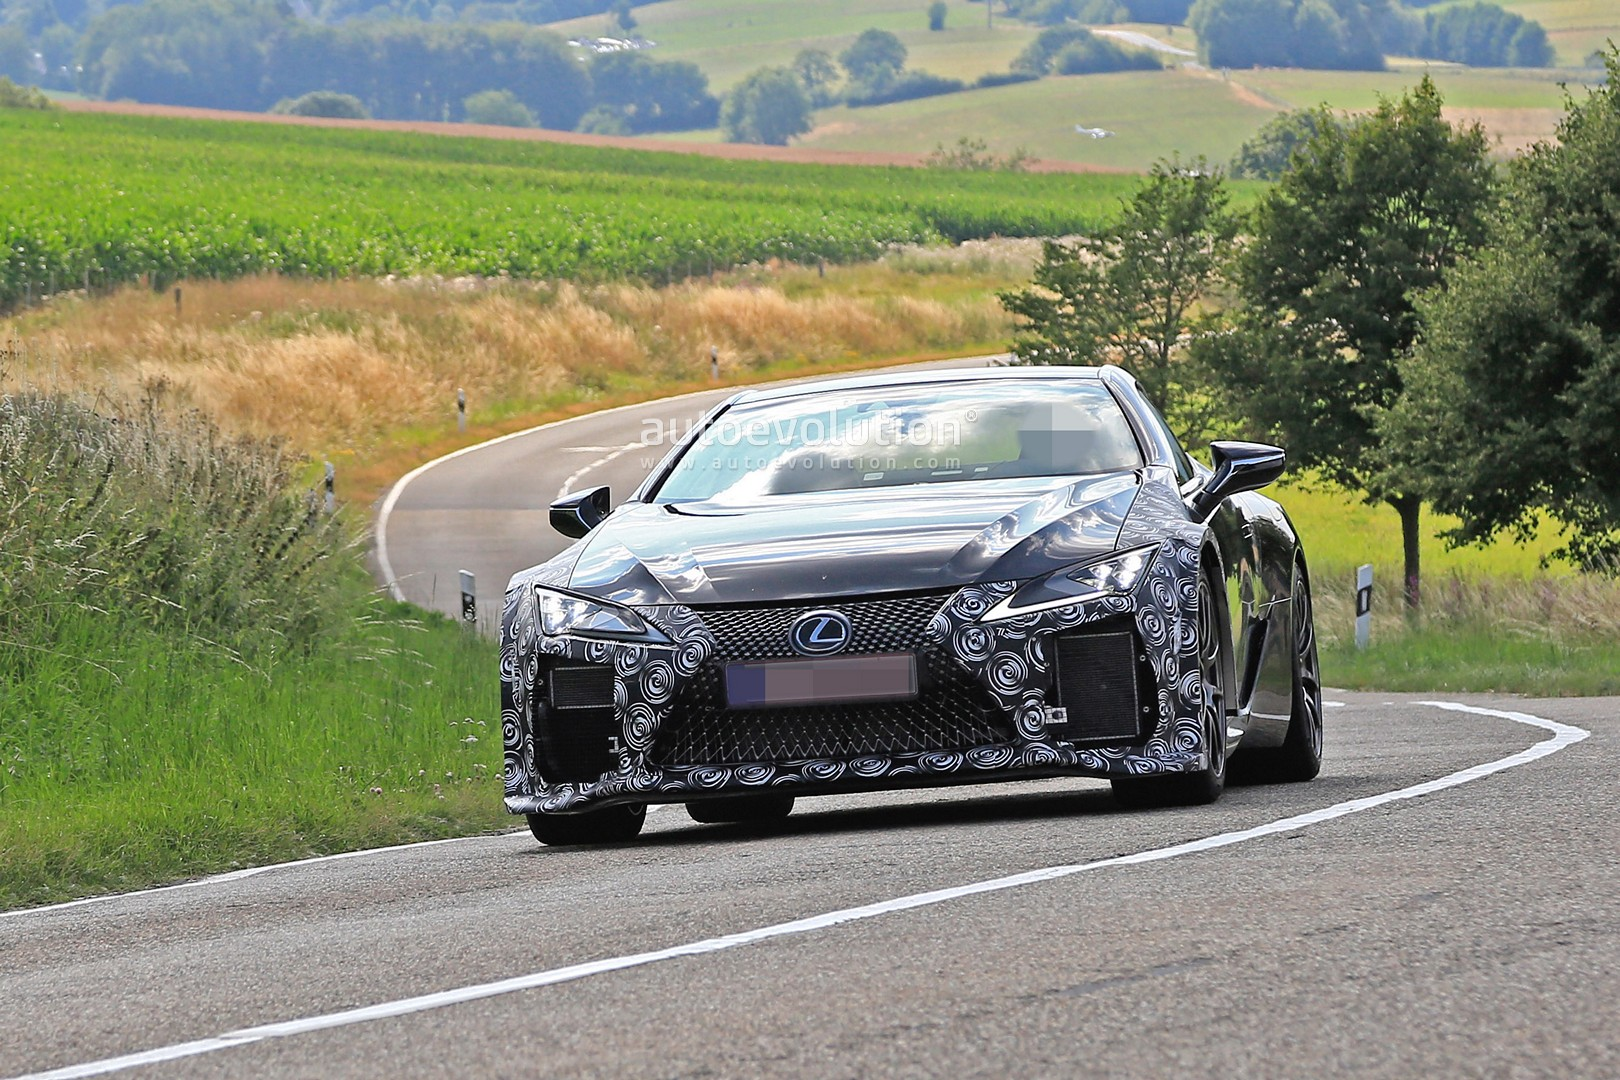 2020 lexus lc f spied for the first time, looks to become